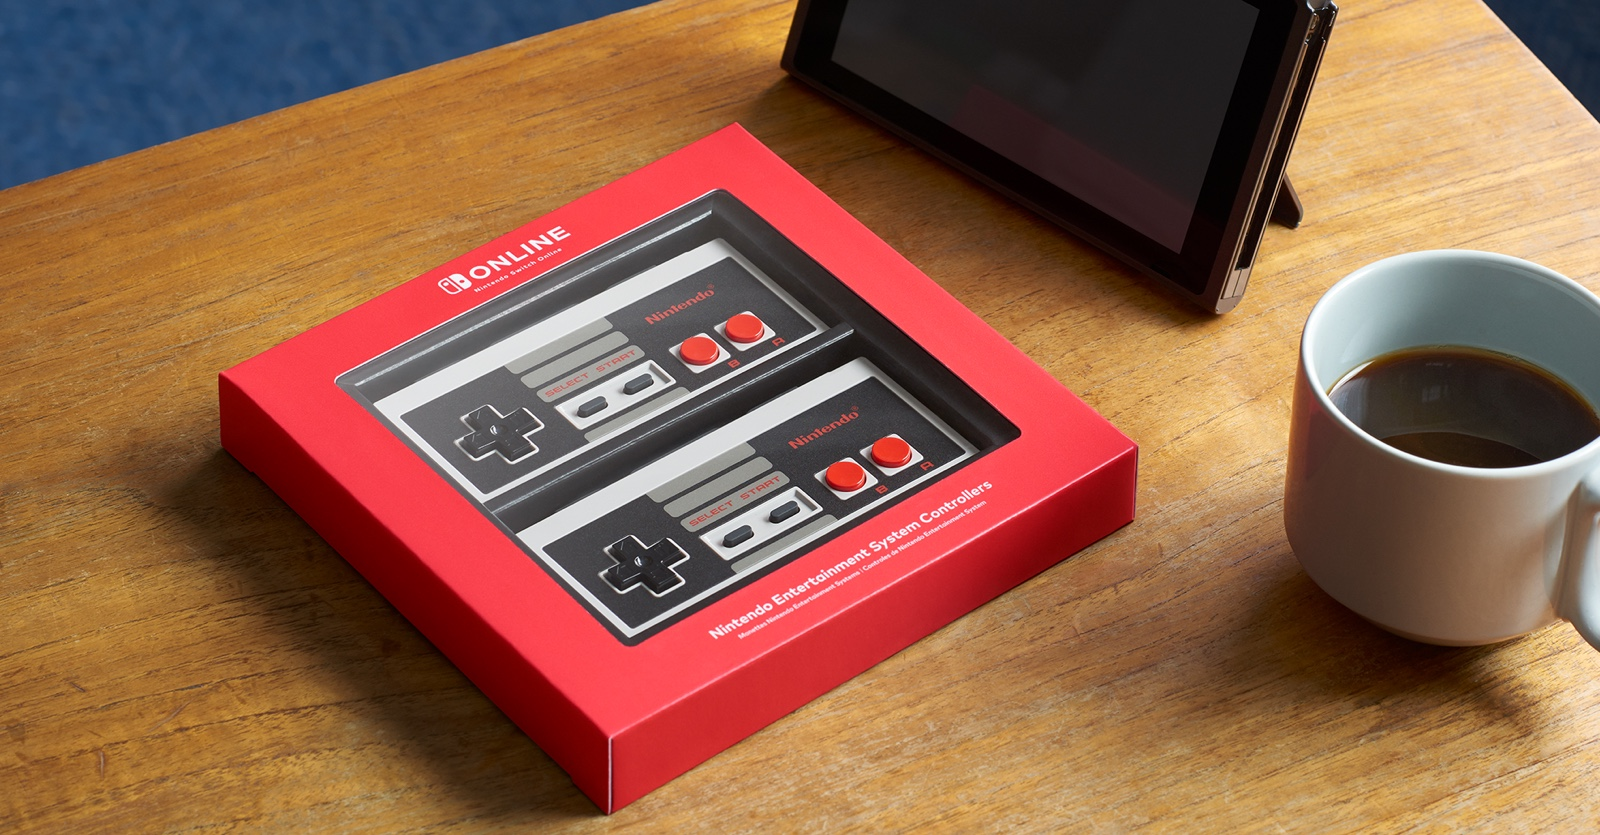 Nintendo's NES Switch controllers activate the nostalgia centers (and wallets) of retro gamers controllerhero